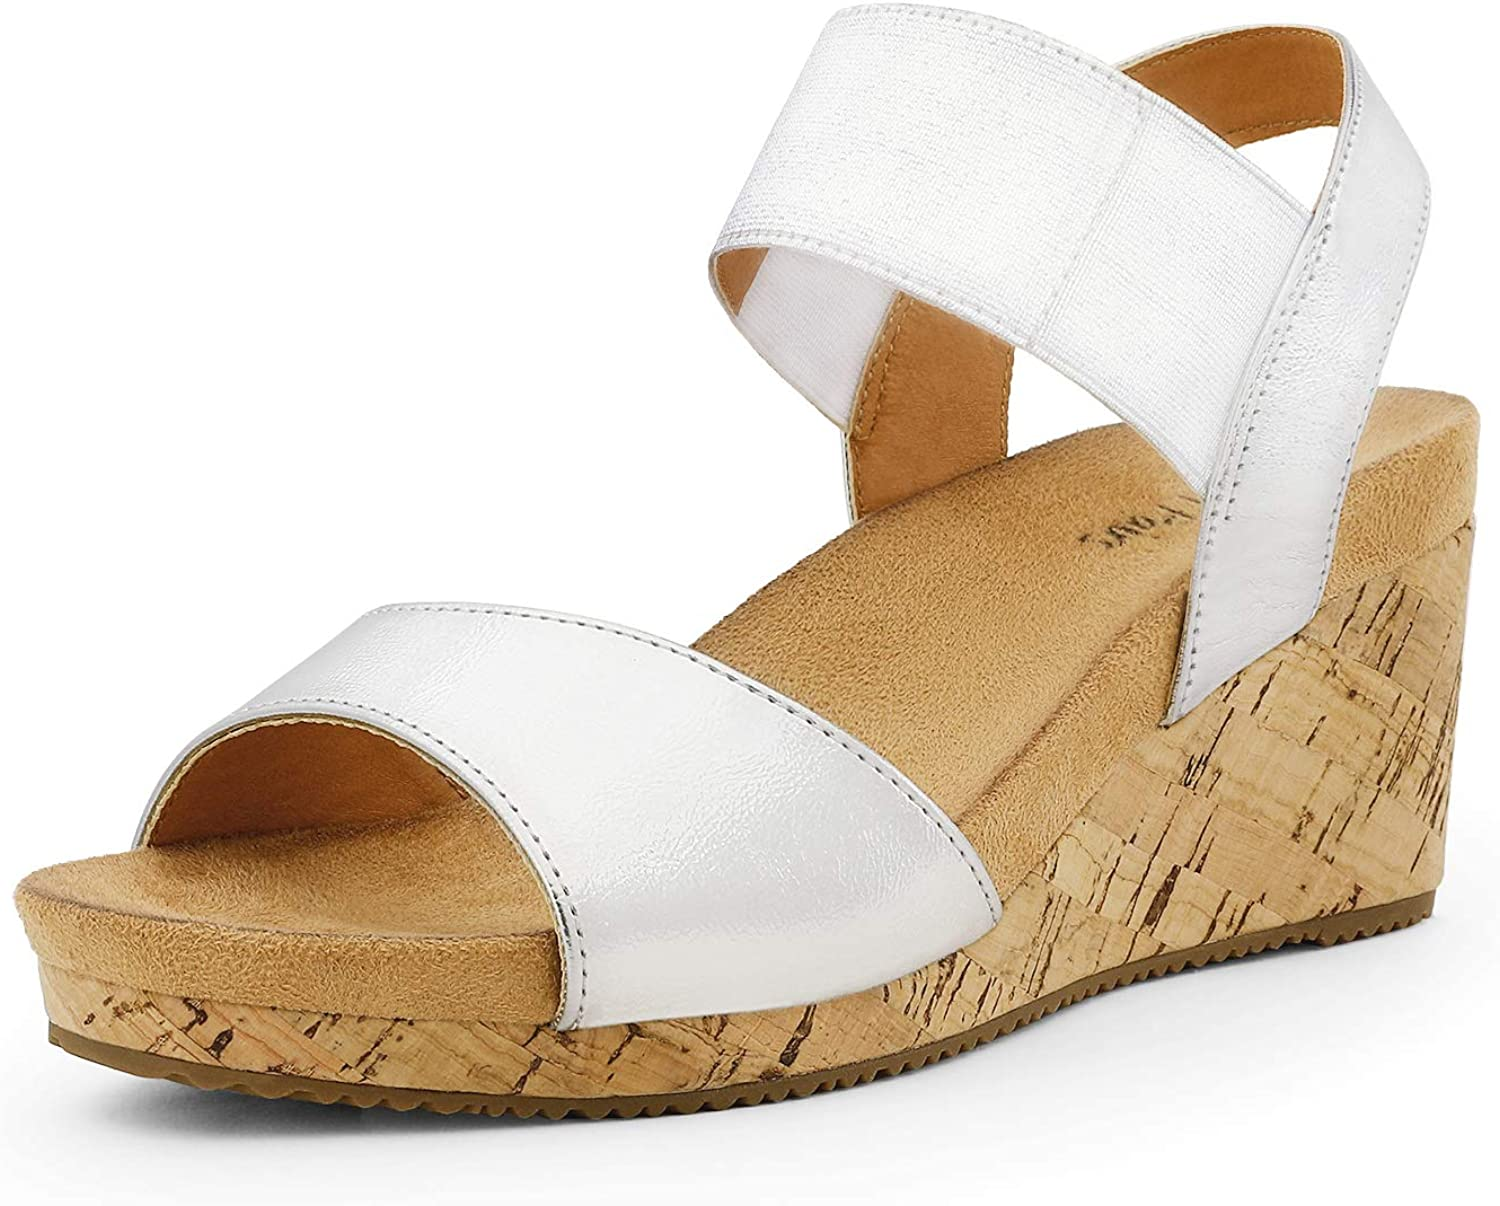 gift DREAM PAIRS Women's Open Toe Buckle S Excellence Ankle Wedge Strap Platform